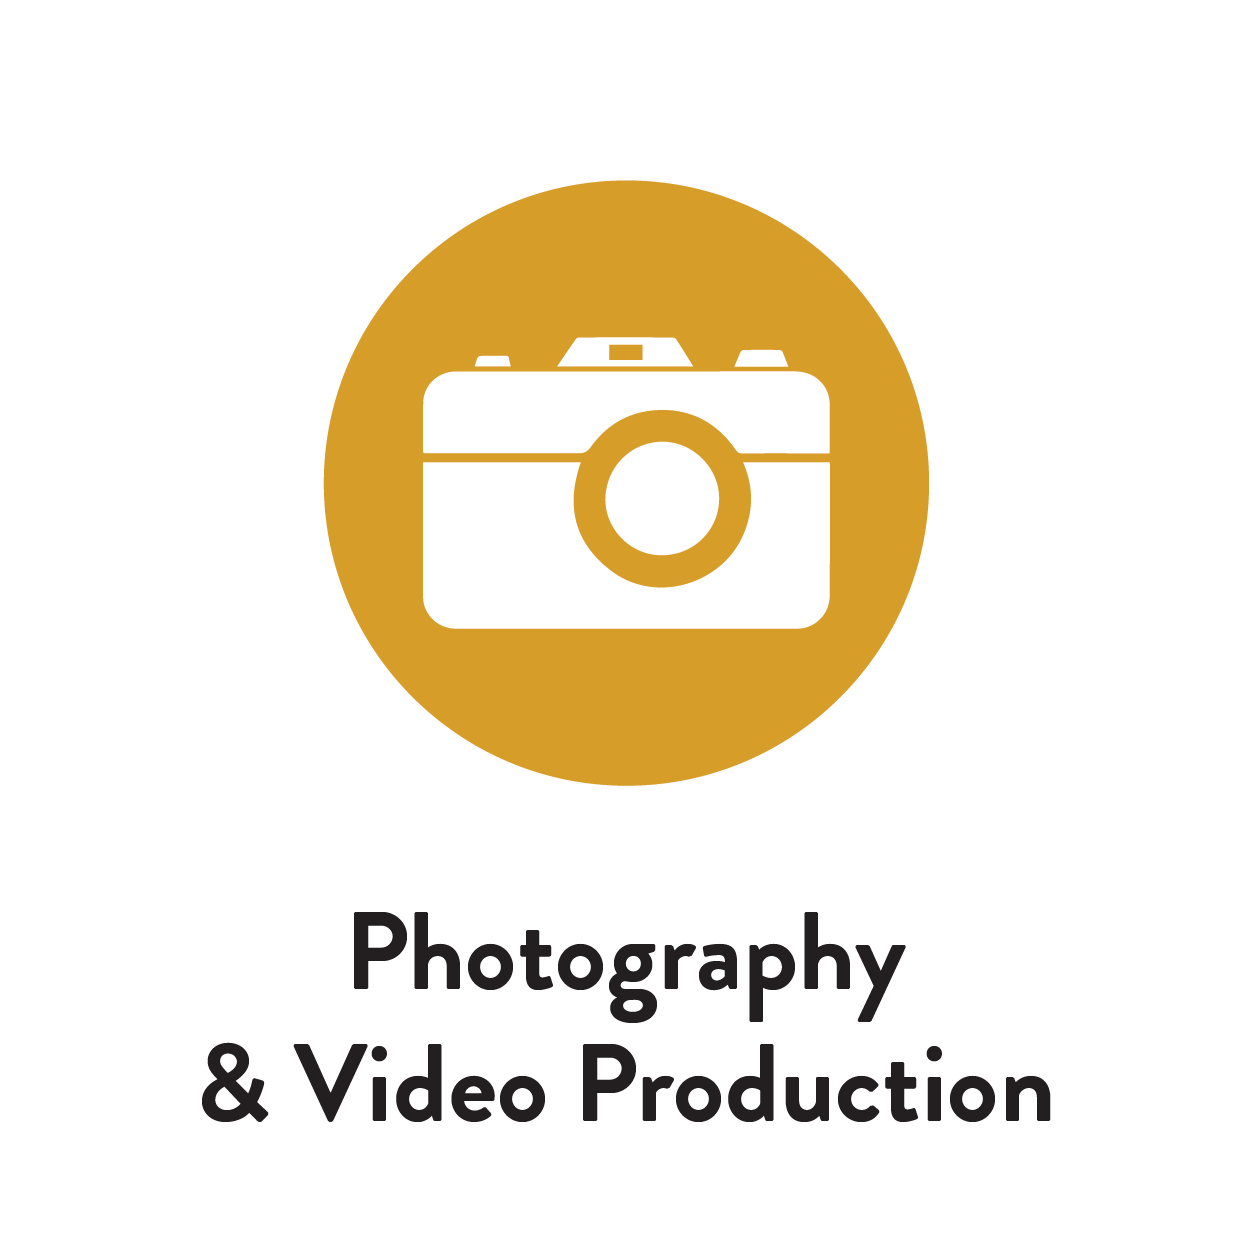 photography a video production-01.png